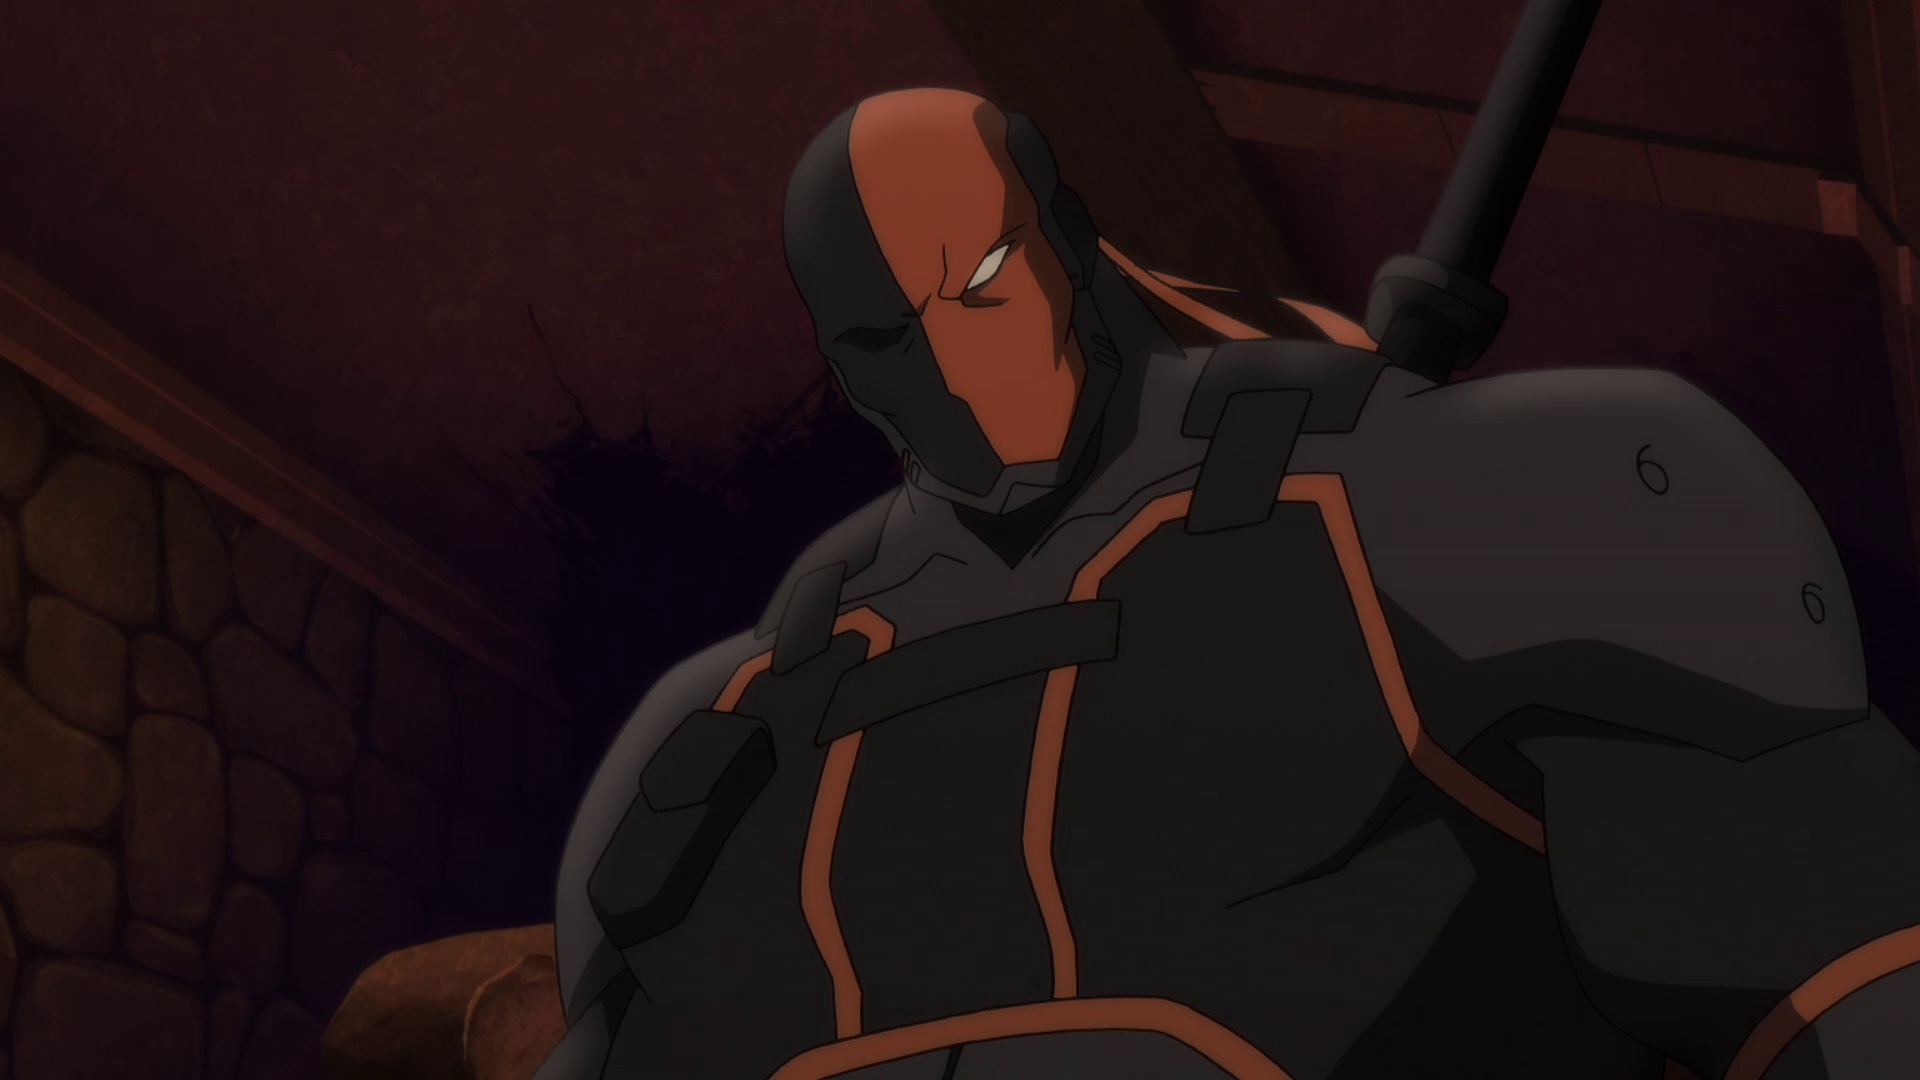 Deathstroke (DC Animated Film Universe)